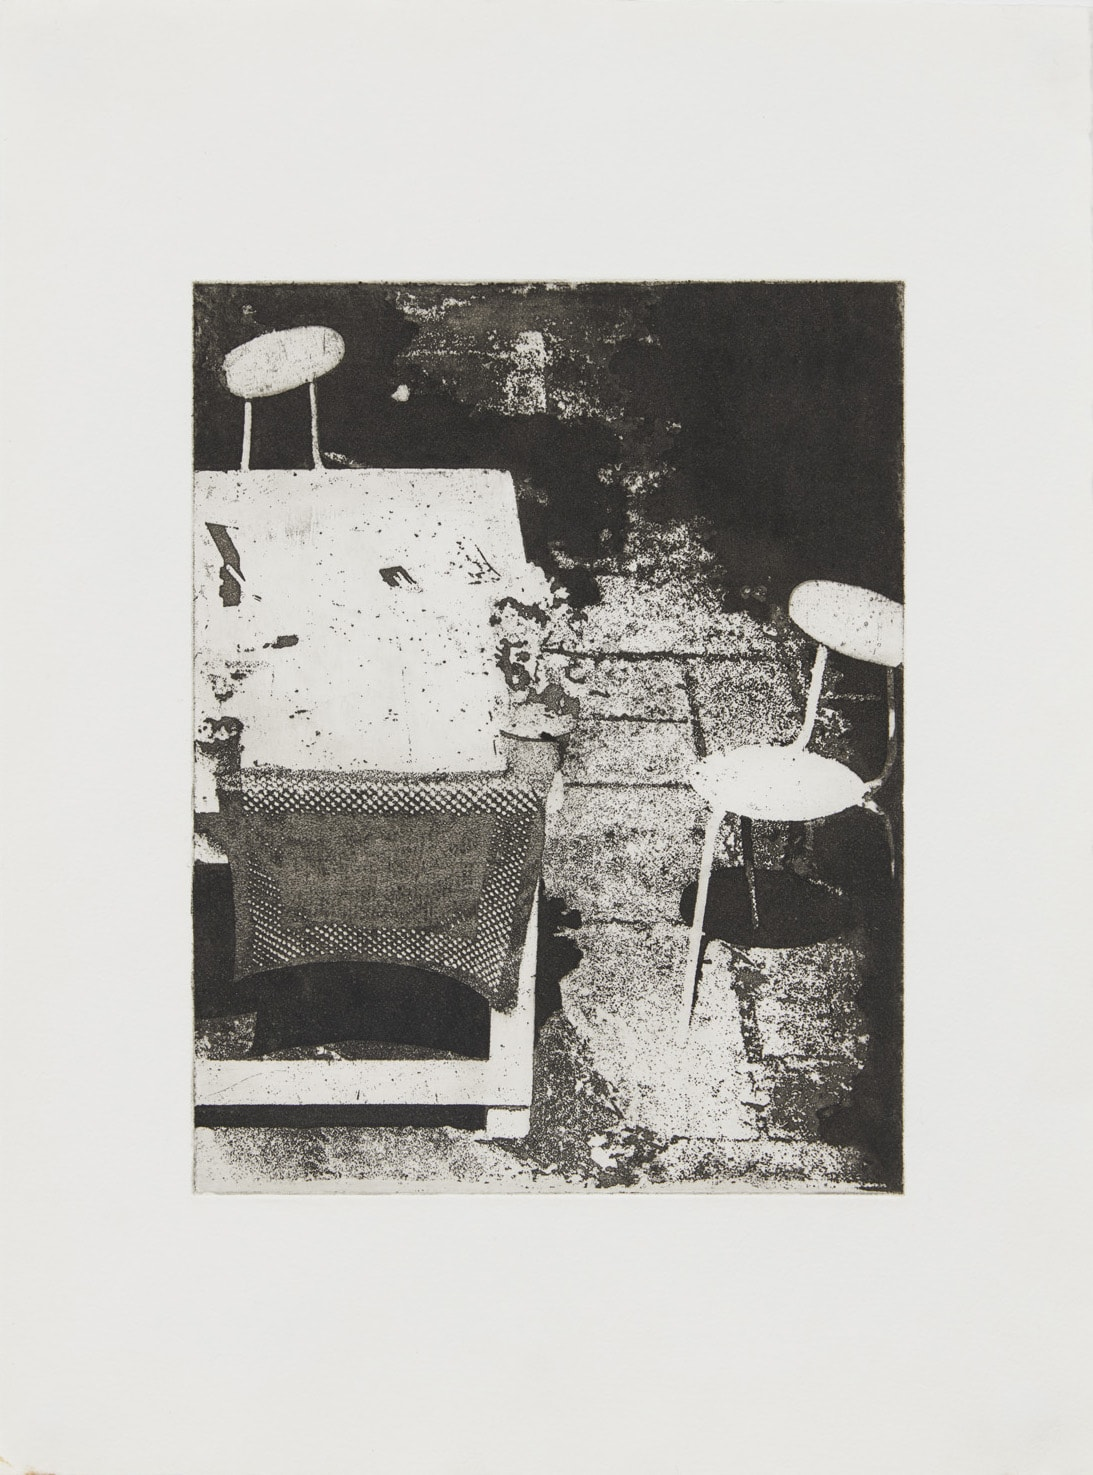 Shelagh WAKELY Another person's garden II, 1975 Etching 40 x 29.7 cm